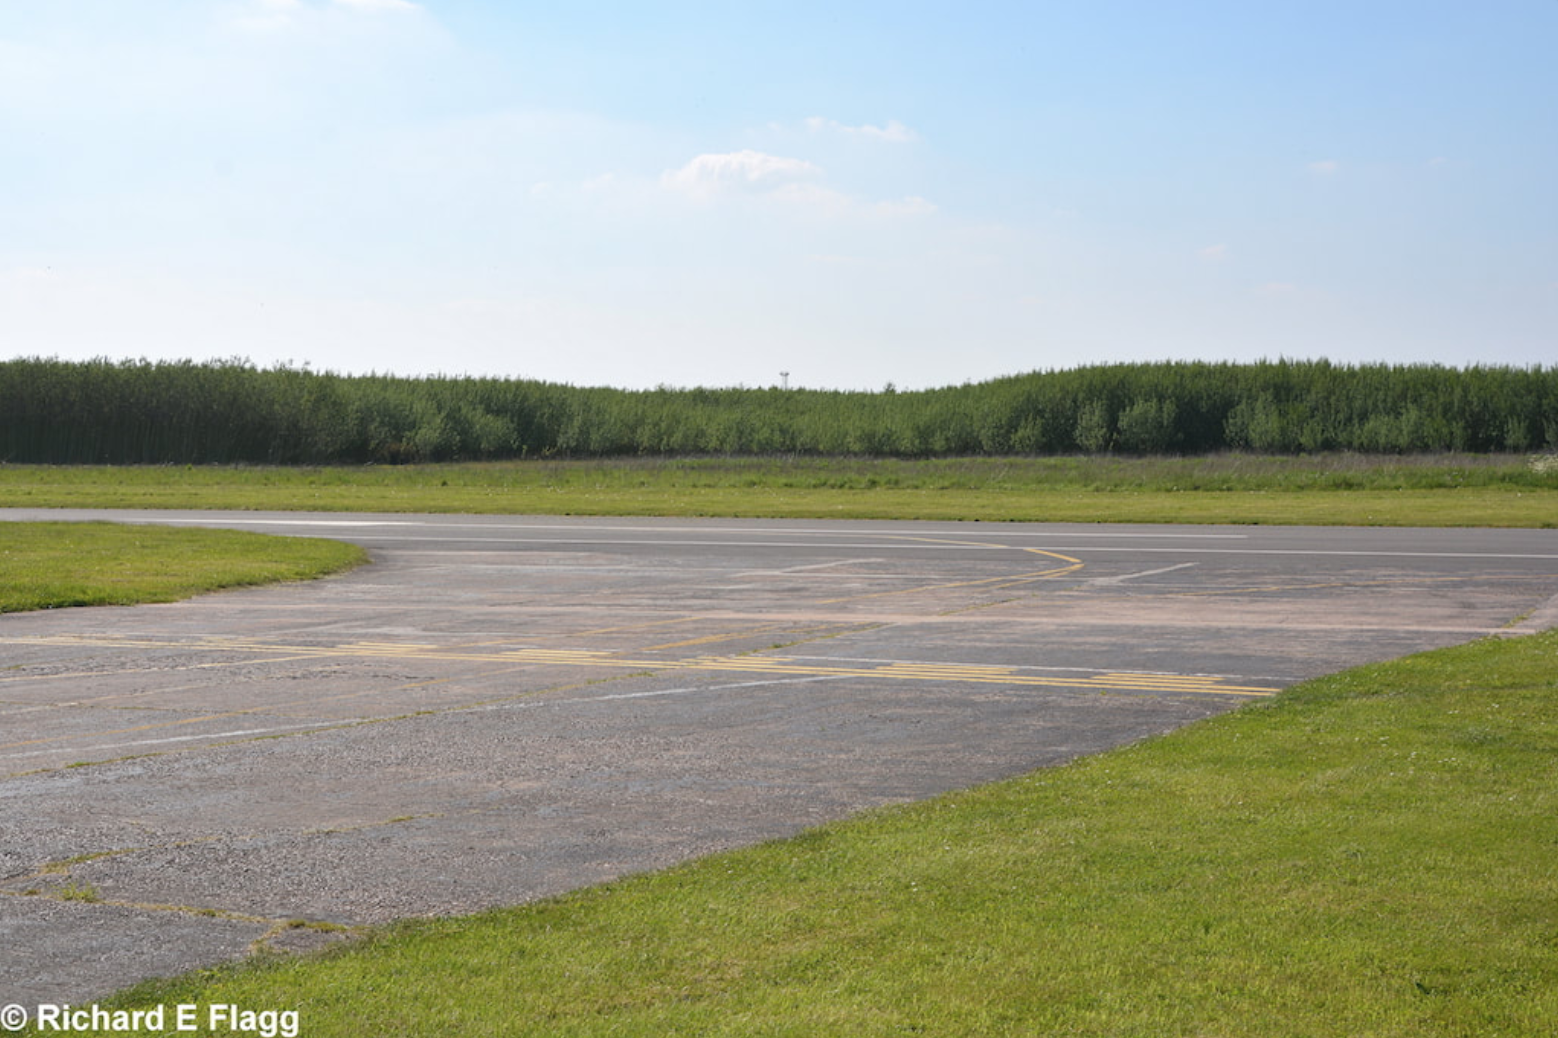 005Taxiway at the east of the airfield. Looking from near the site of a wartime T2 hangar, now Sandtoft Flying Club - 25 May 2017.png